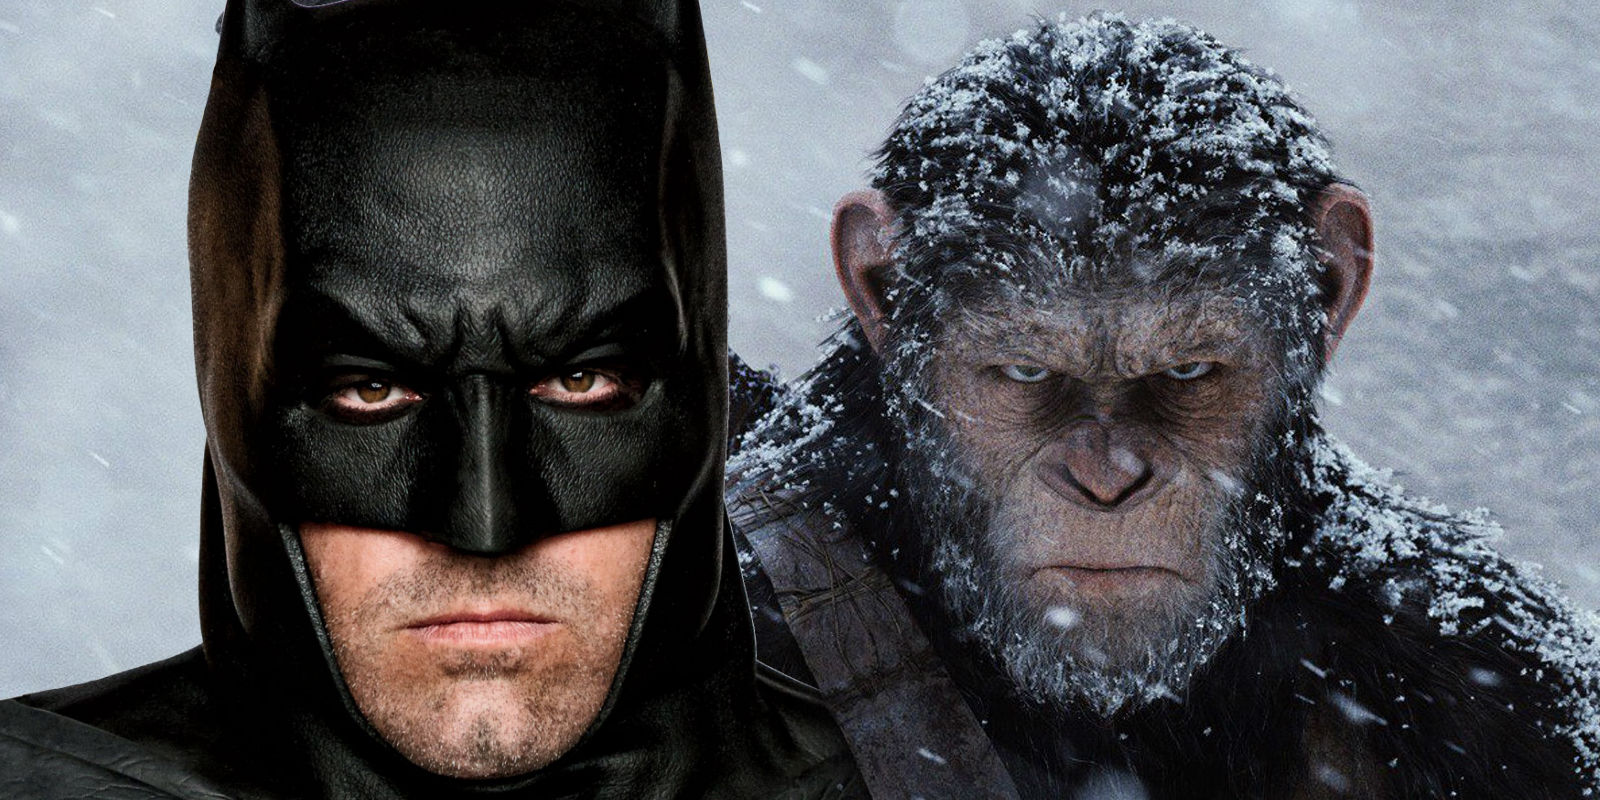 Batman Ben Affleck Planet of the Apes Caesar